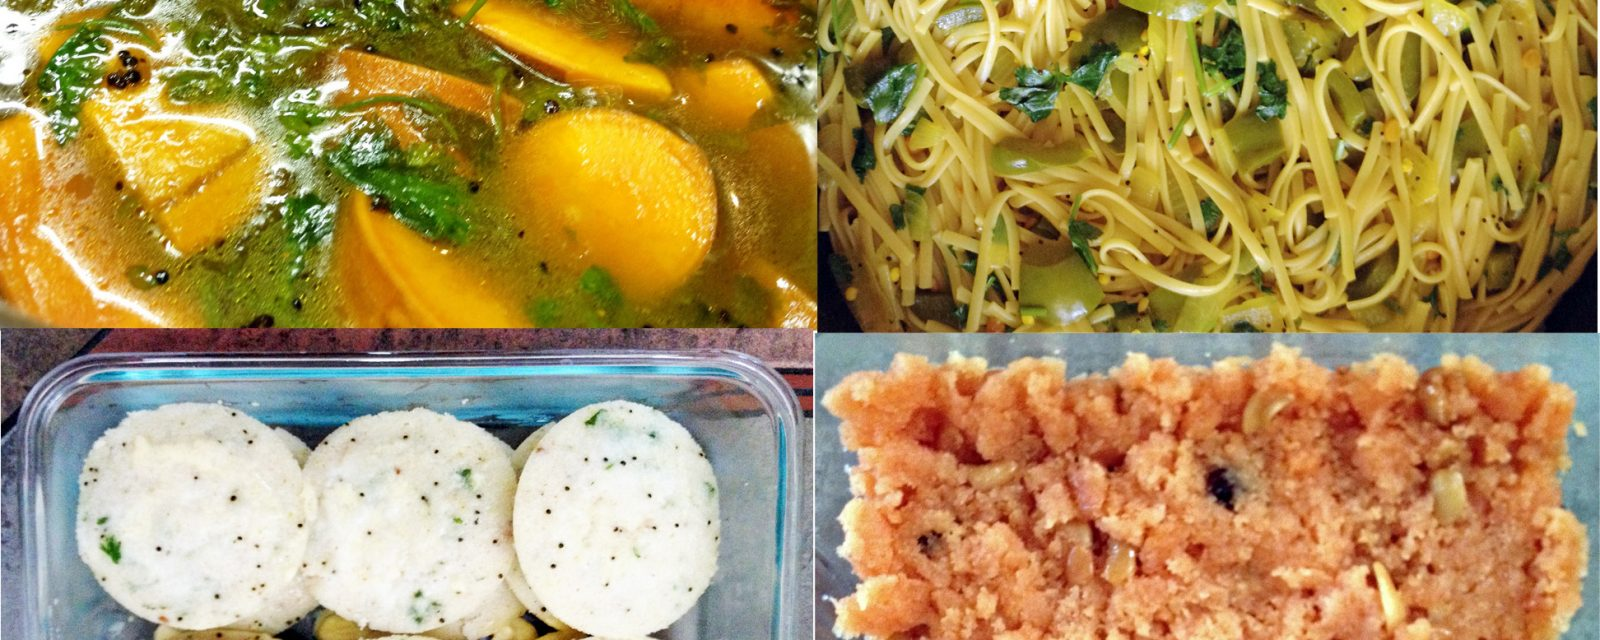 Vegetarian and Vegan Recipes of India and More